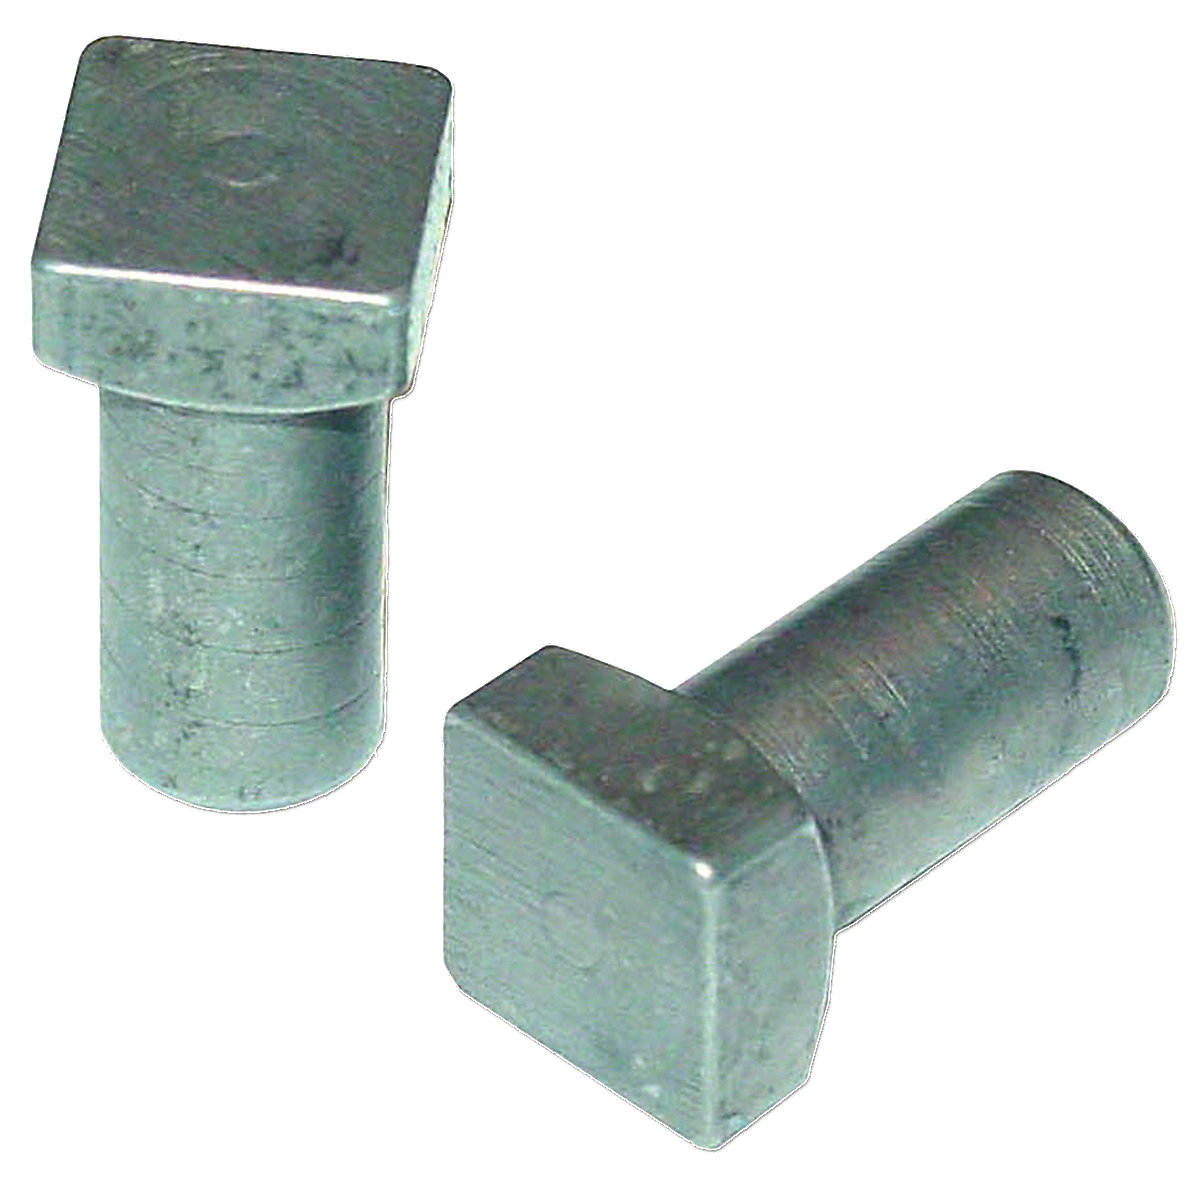 Gear Shift Lever Pins For Allis Chalmers: 190XT, B, C, CA, G, WD, WD45, 210, 220, 7000, 7010, 7020, 7030, 7040, 7045, 7050, 7060, 7080, 7580, 8010, 8030, 8050, 8070.